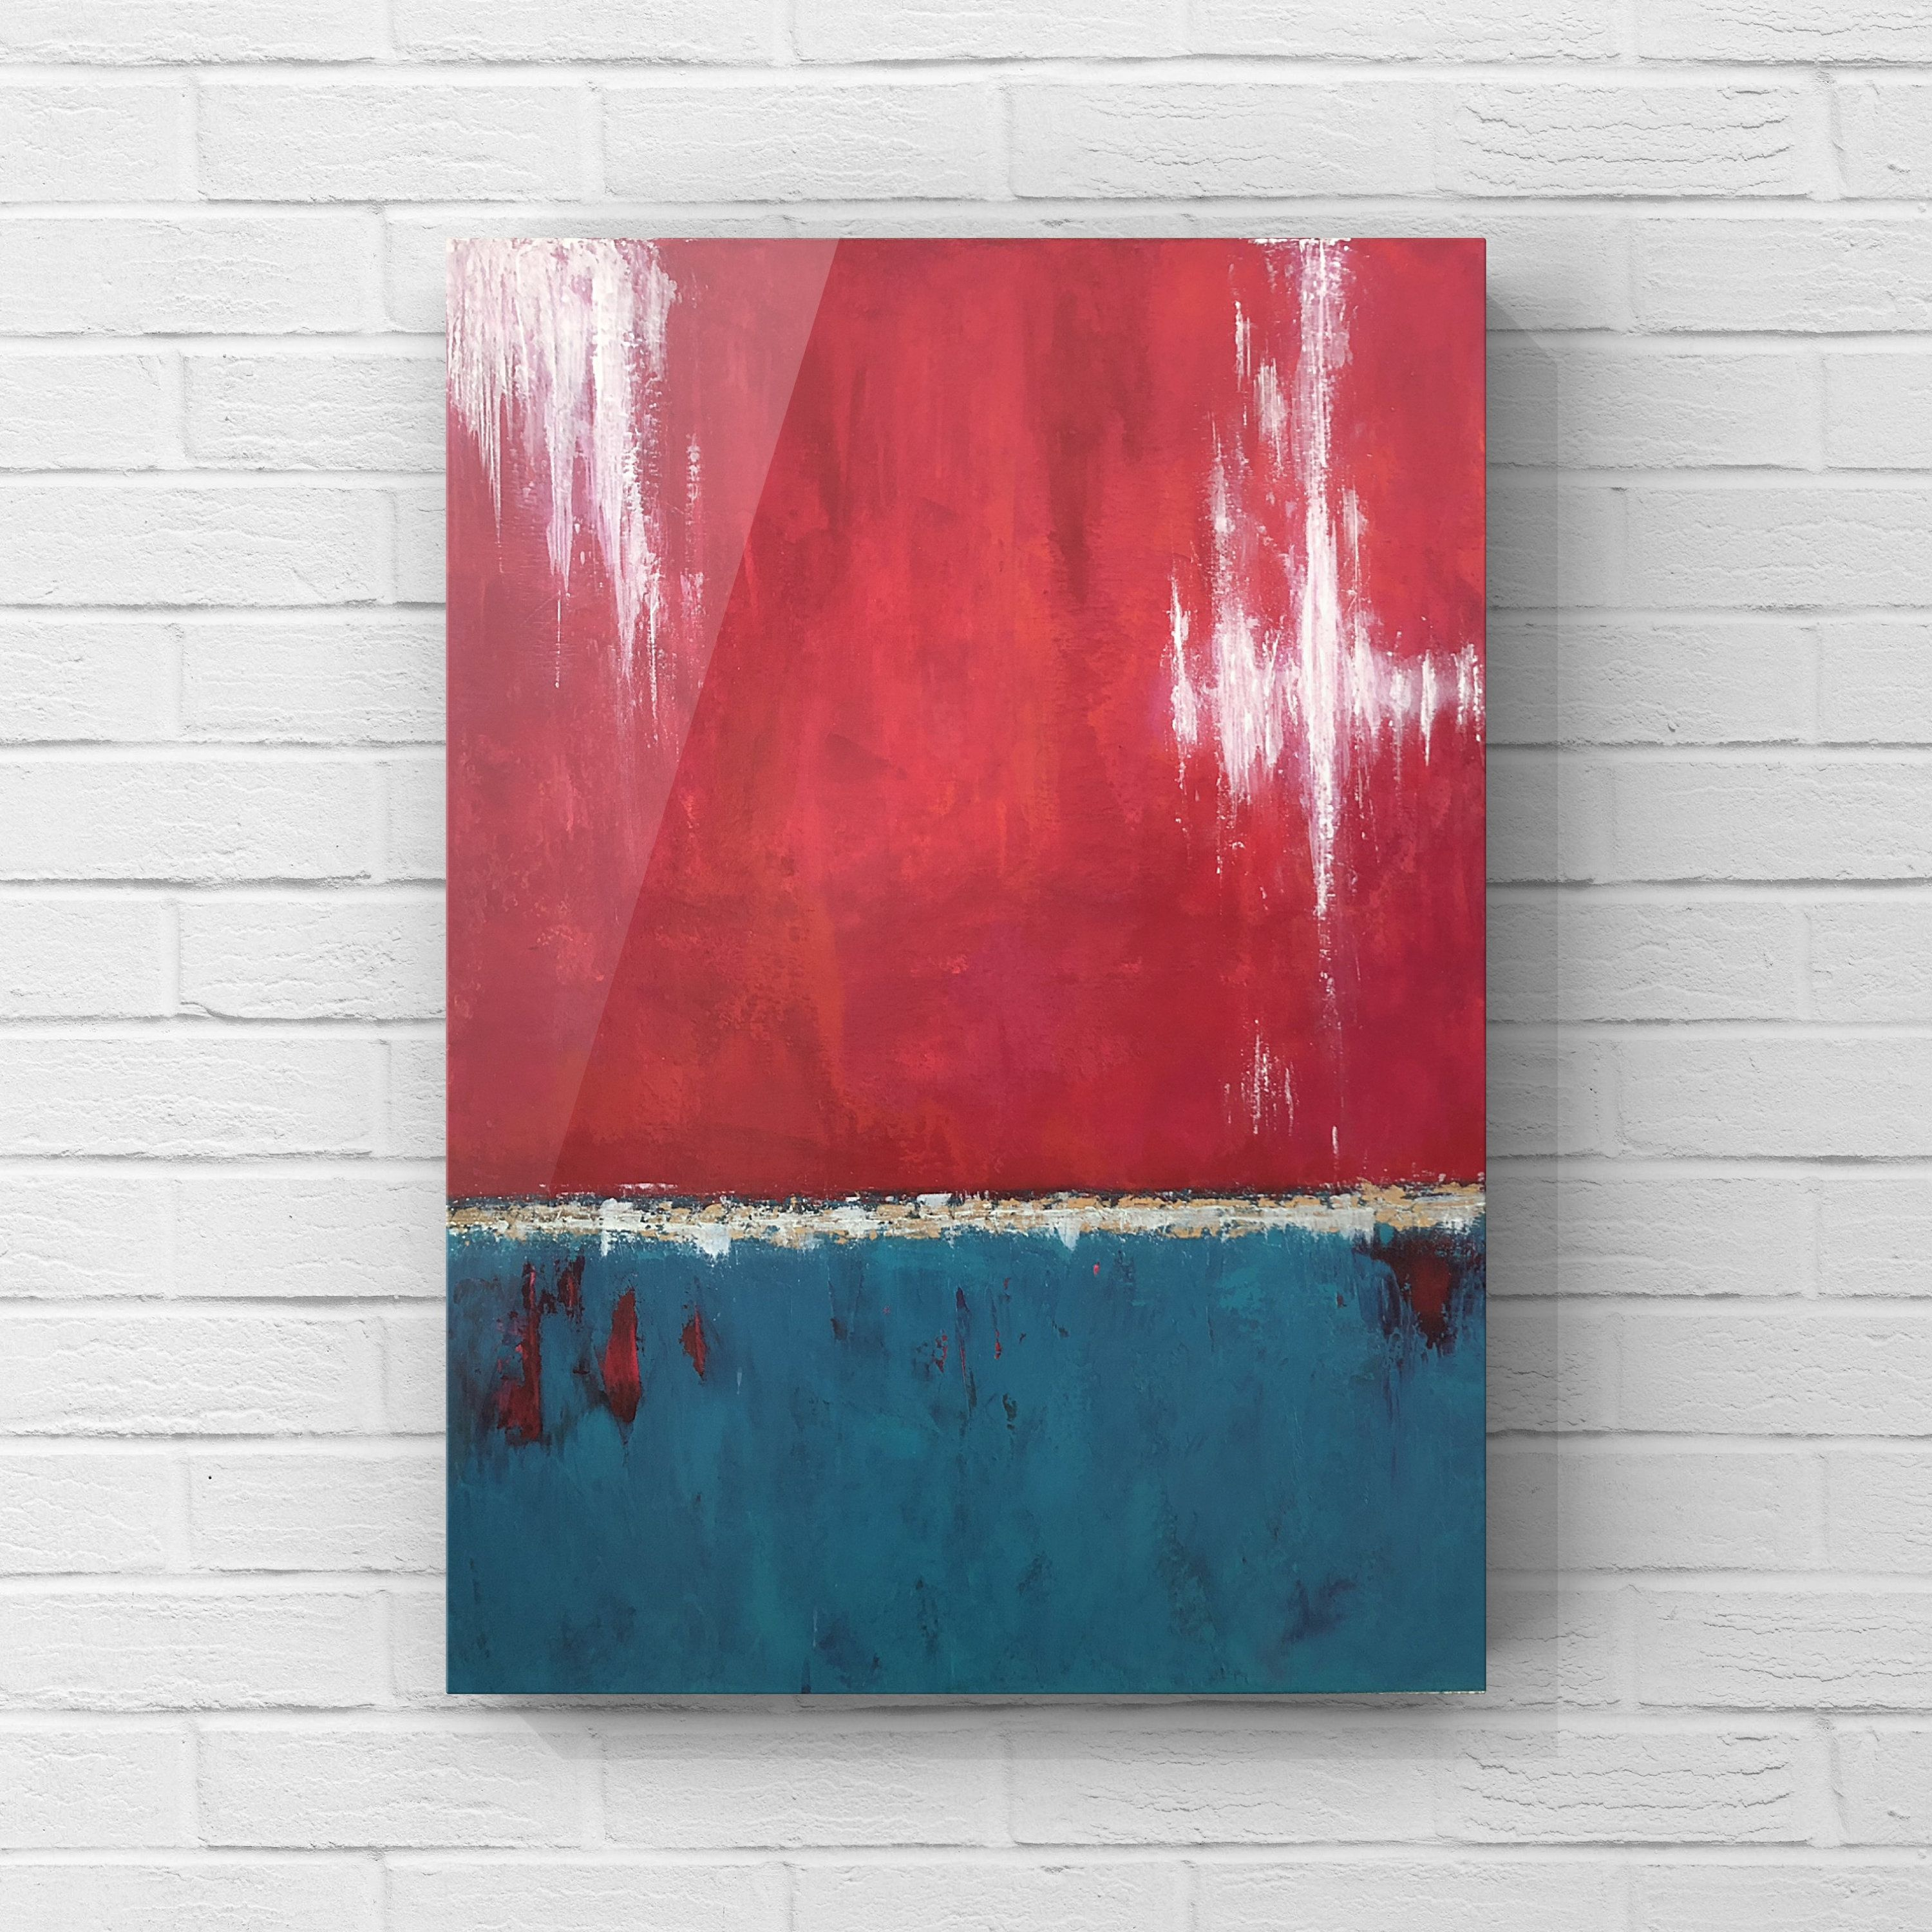 Original Abstract Painting 60x80 Cm Ready To Hang Turquoise Red White Modern Wall Art Living Room Decor Painting Wall Art Decor Living Room Modern Wall Art Living Room #paintings #for #decoration #in #living #room